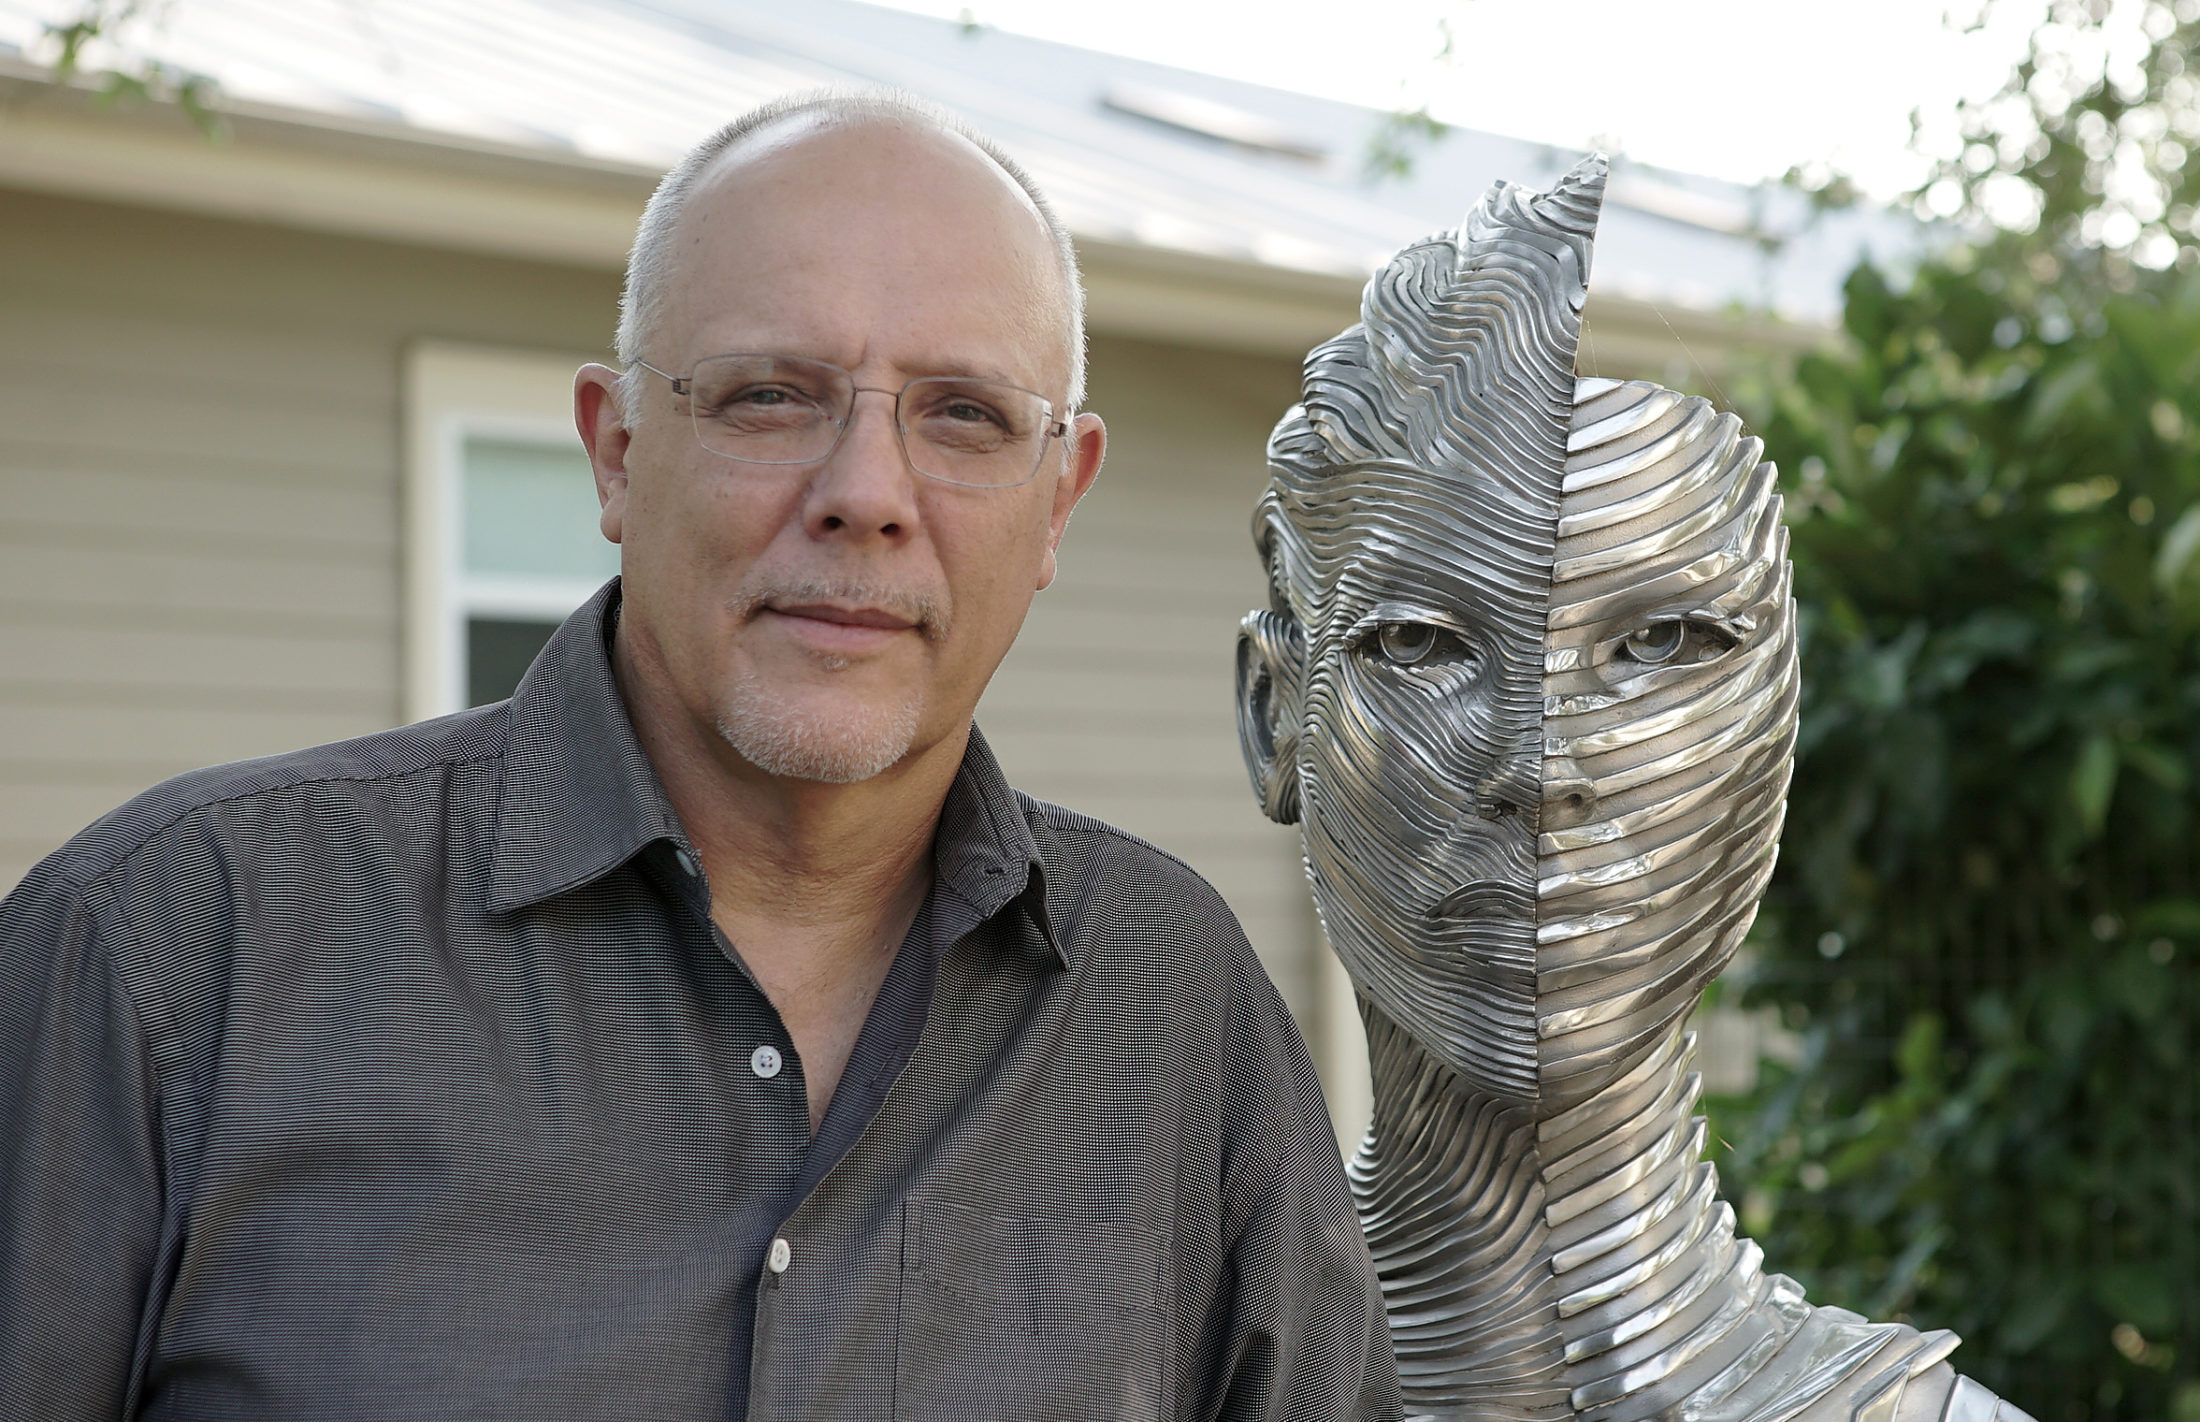 Bruvel next to one of his steel sculptures. Photo by Joshua Barajas/PBS NewsHour